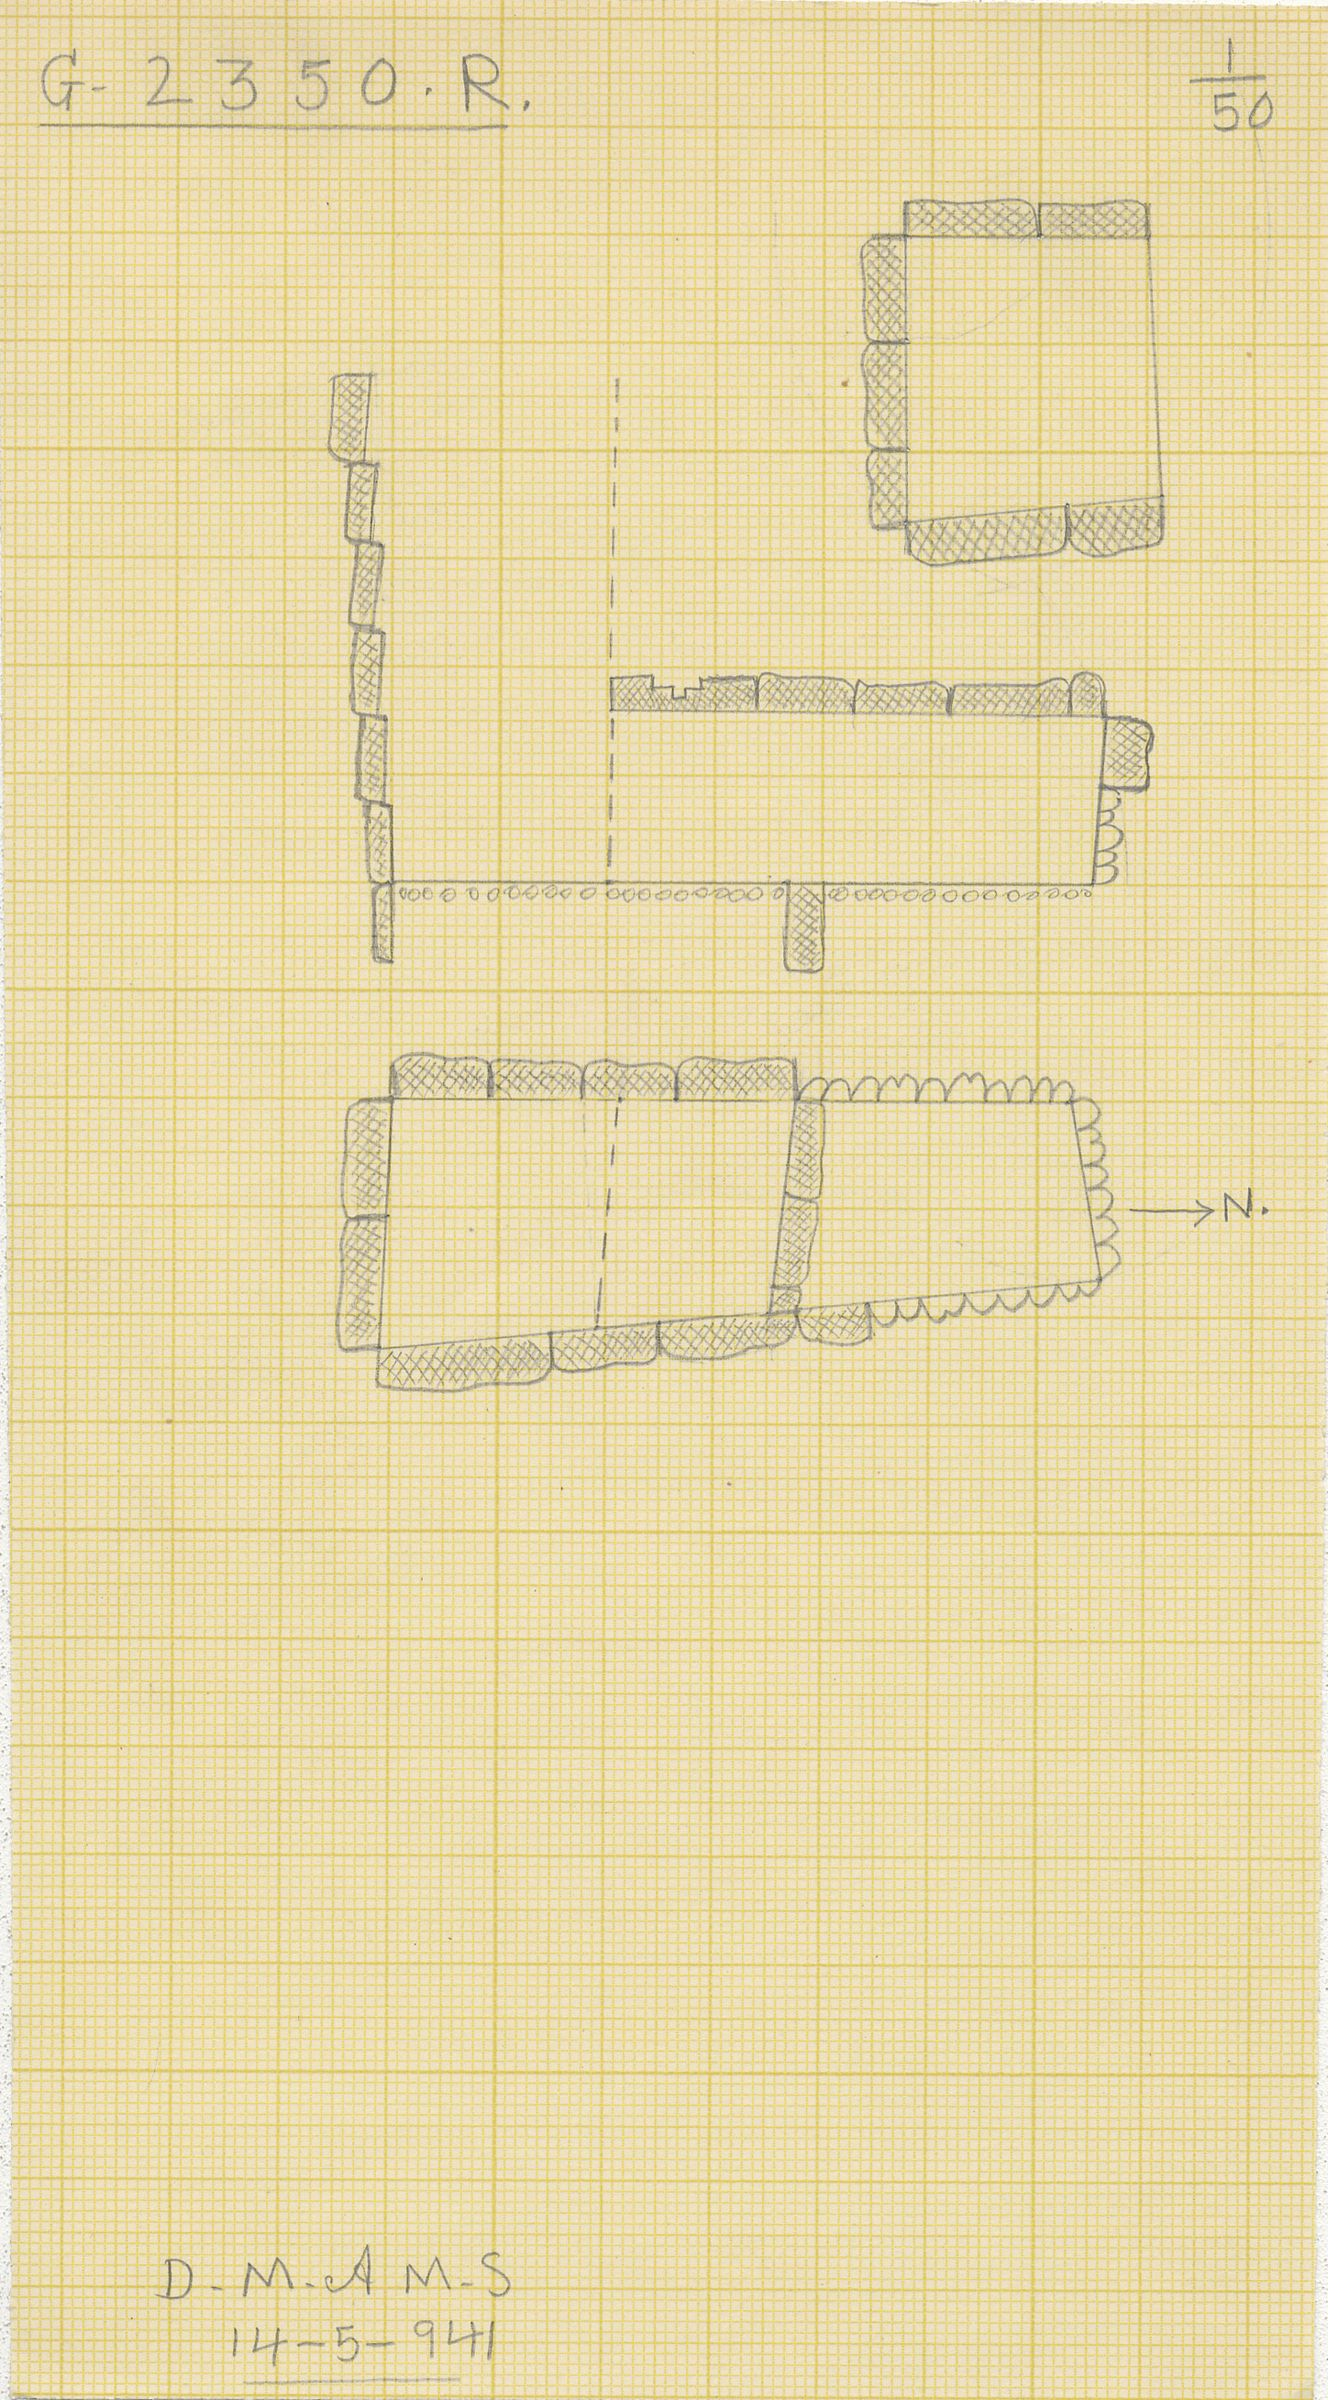 Maps and plans: G 2350 = G 5290, Shaft R